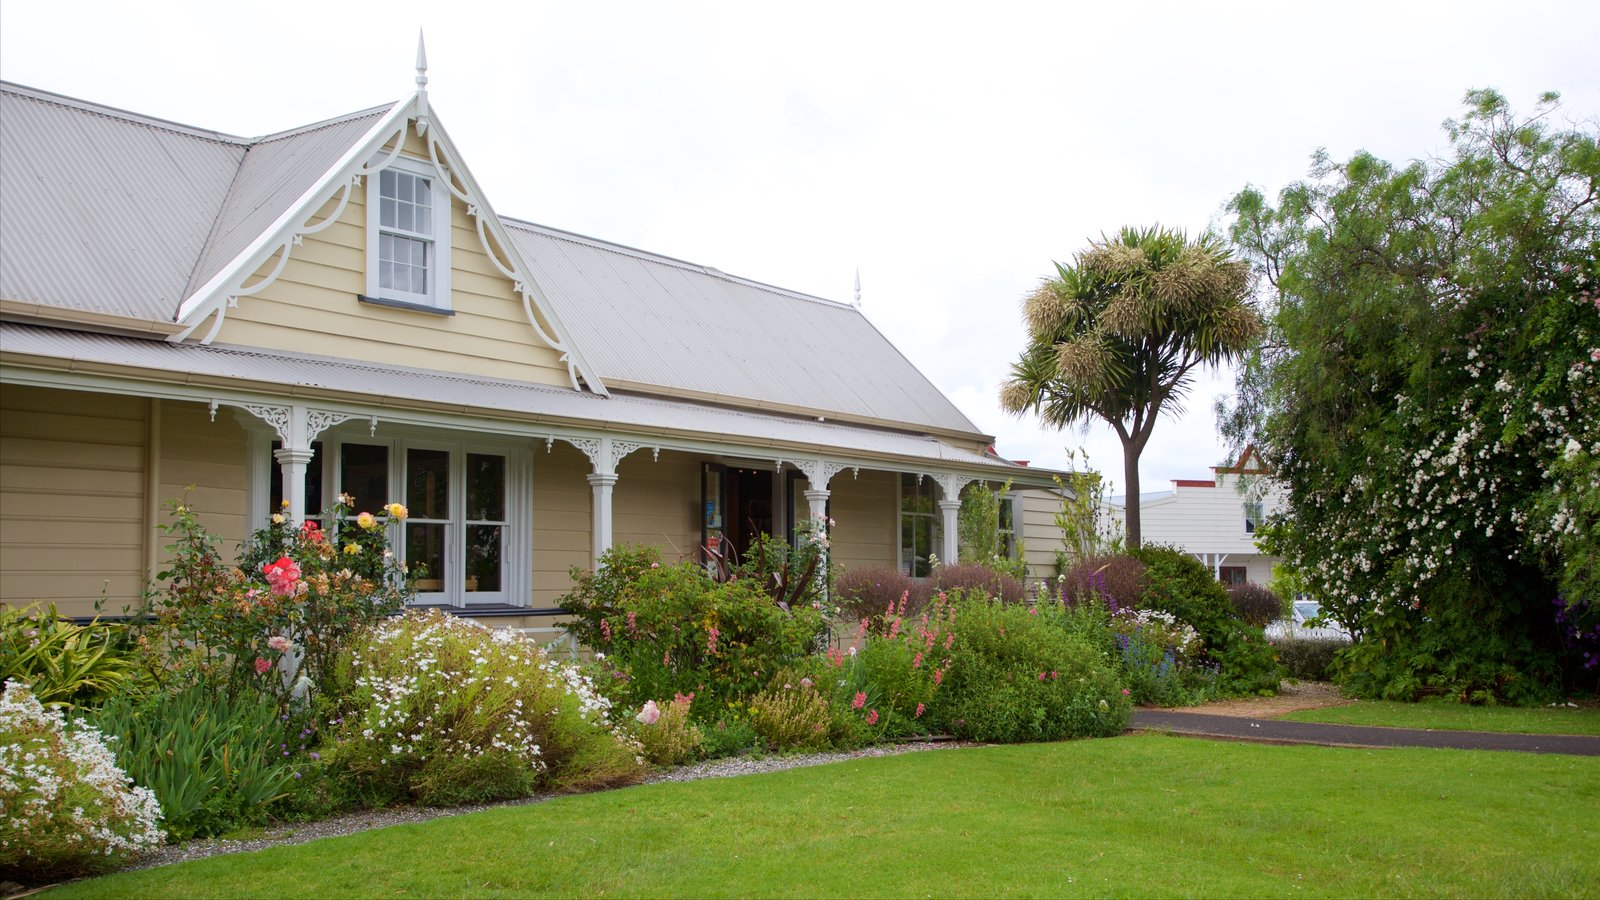 Whangarei which includes a house, heritage architecture and a park